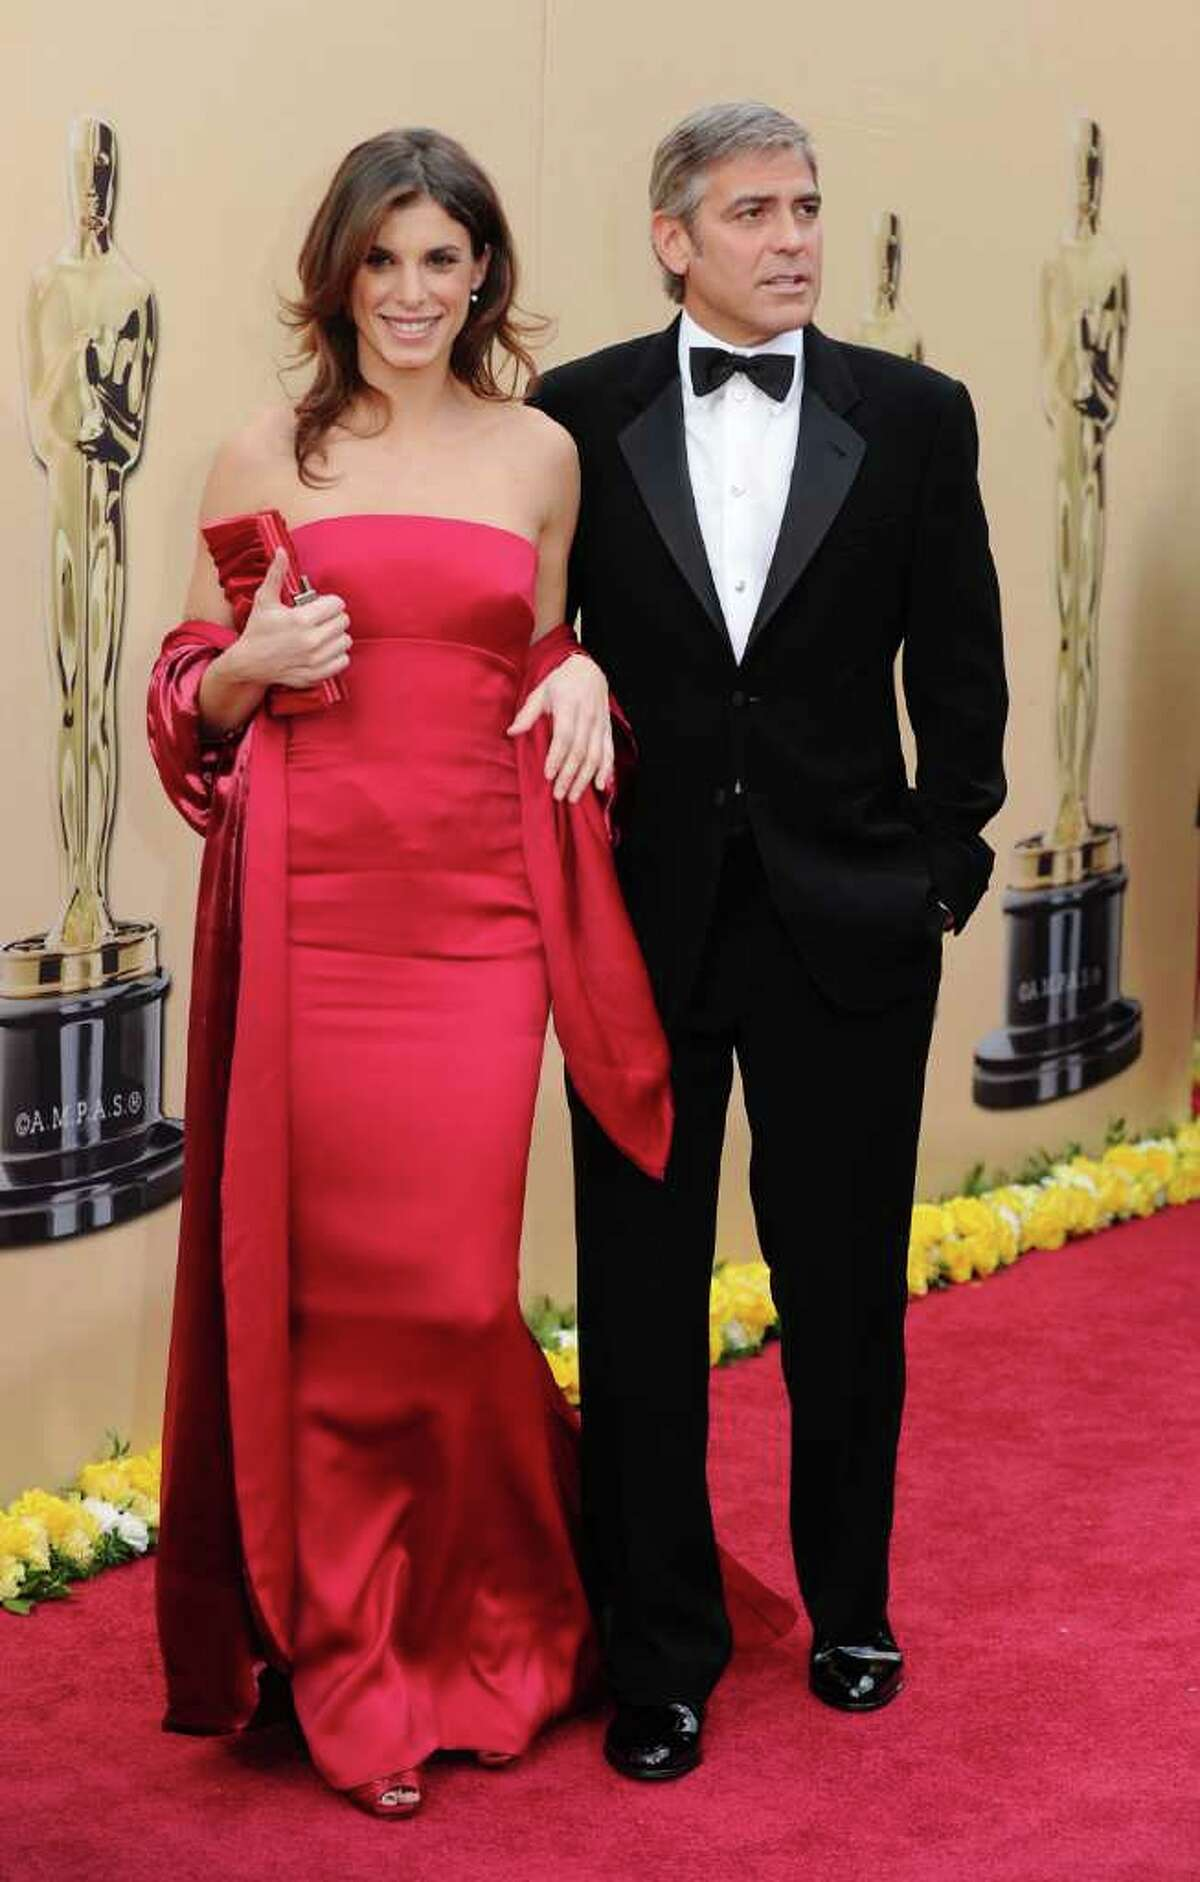 Actor George Clooney and Italian model Elisabetta Canalis issued a joint statement Wednesday confirming that they have broken up. That means one of the world's hottest leading men is available again, although he has said he will never marry again or have kids. Here, Clooney and Canalis arrive at the 82nd Annual Academy Awards on March 7, 2010 in Hollywood, California.